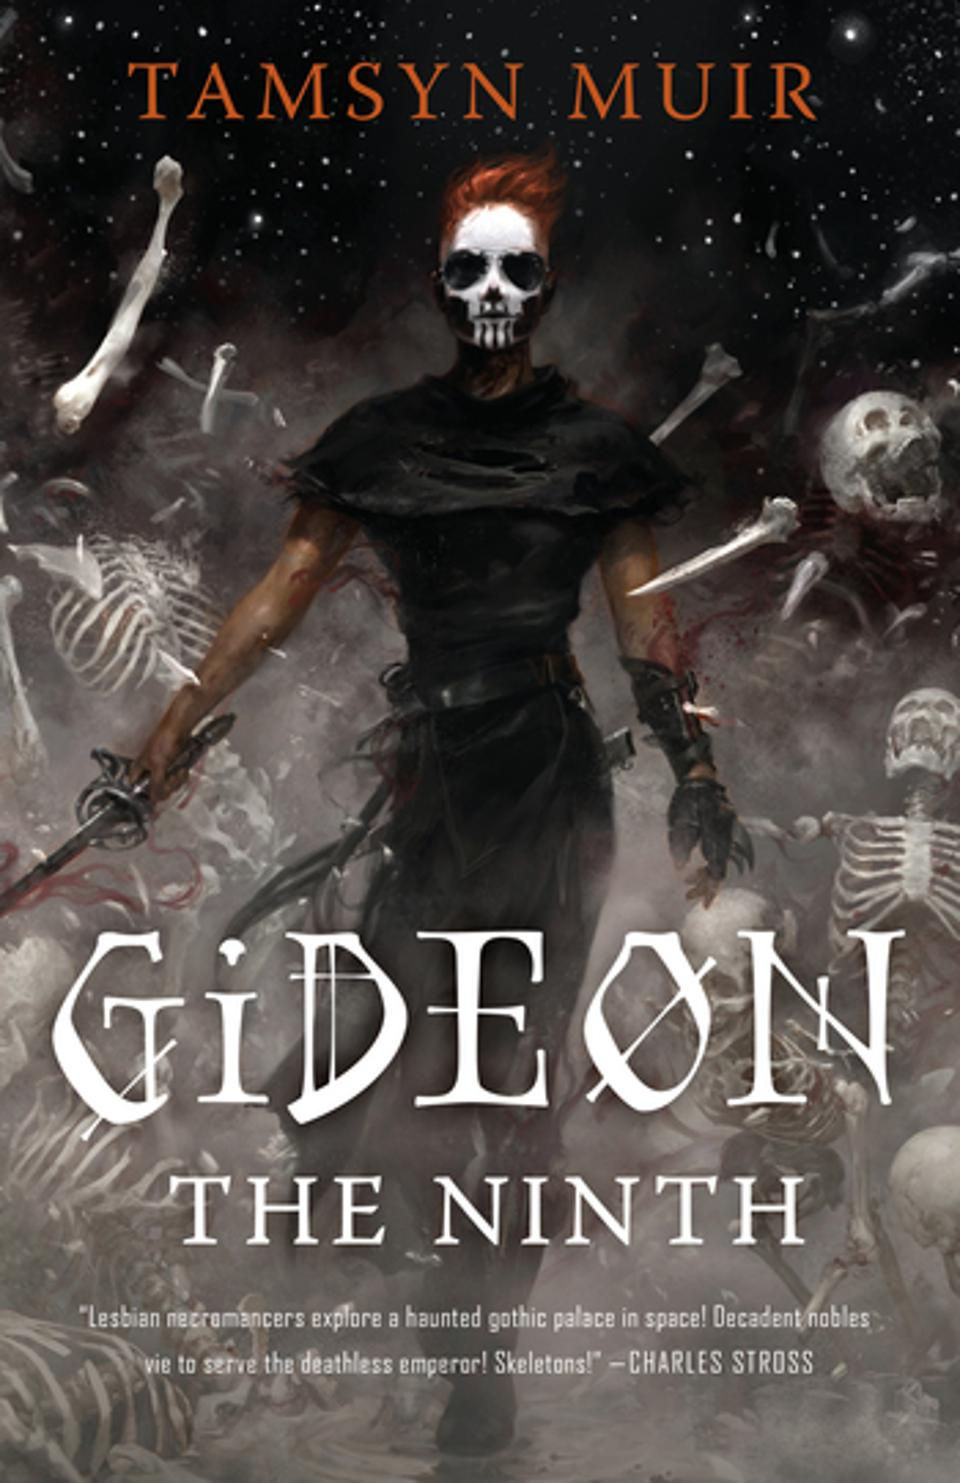 'Gideon the Ninth' Cover